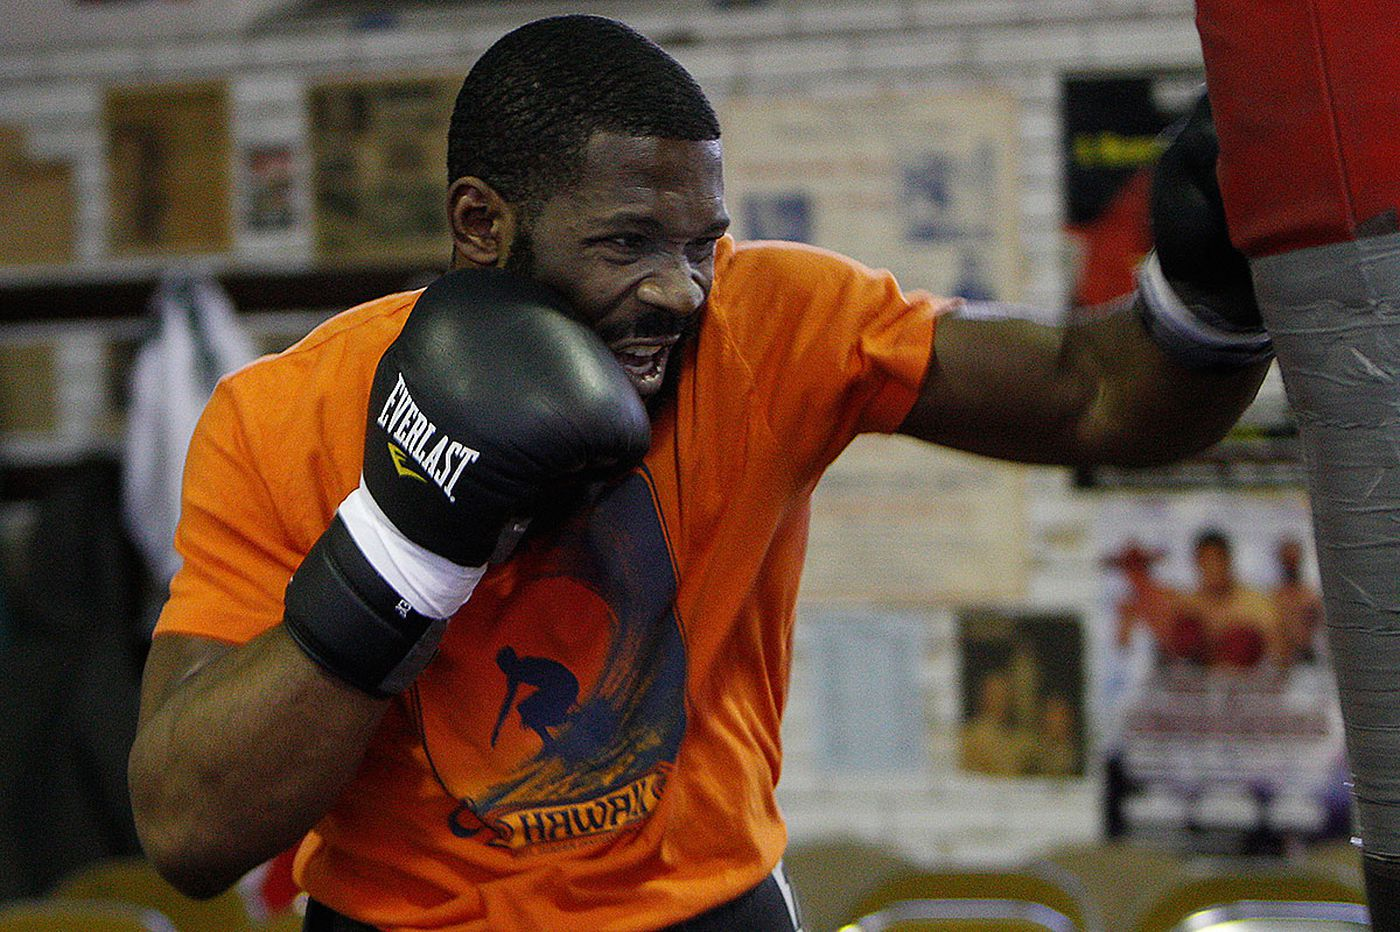 Philly's Bryant Jennings hoping to get shot at heavyweight title